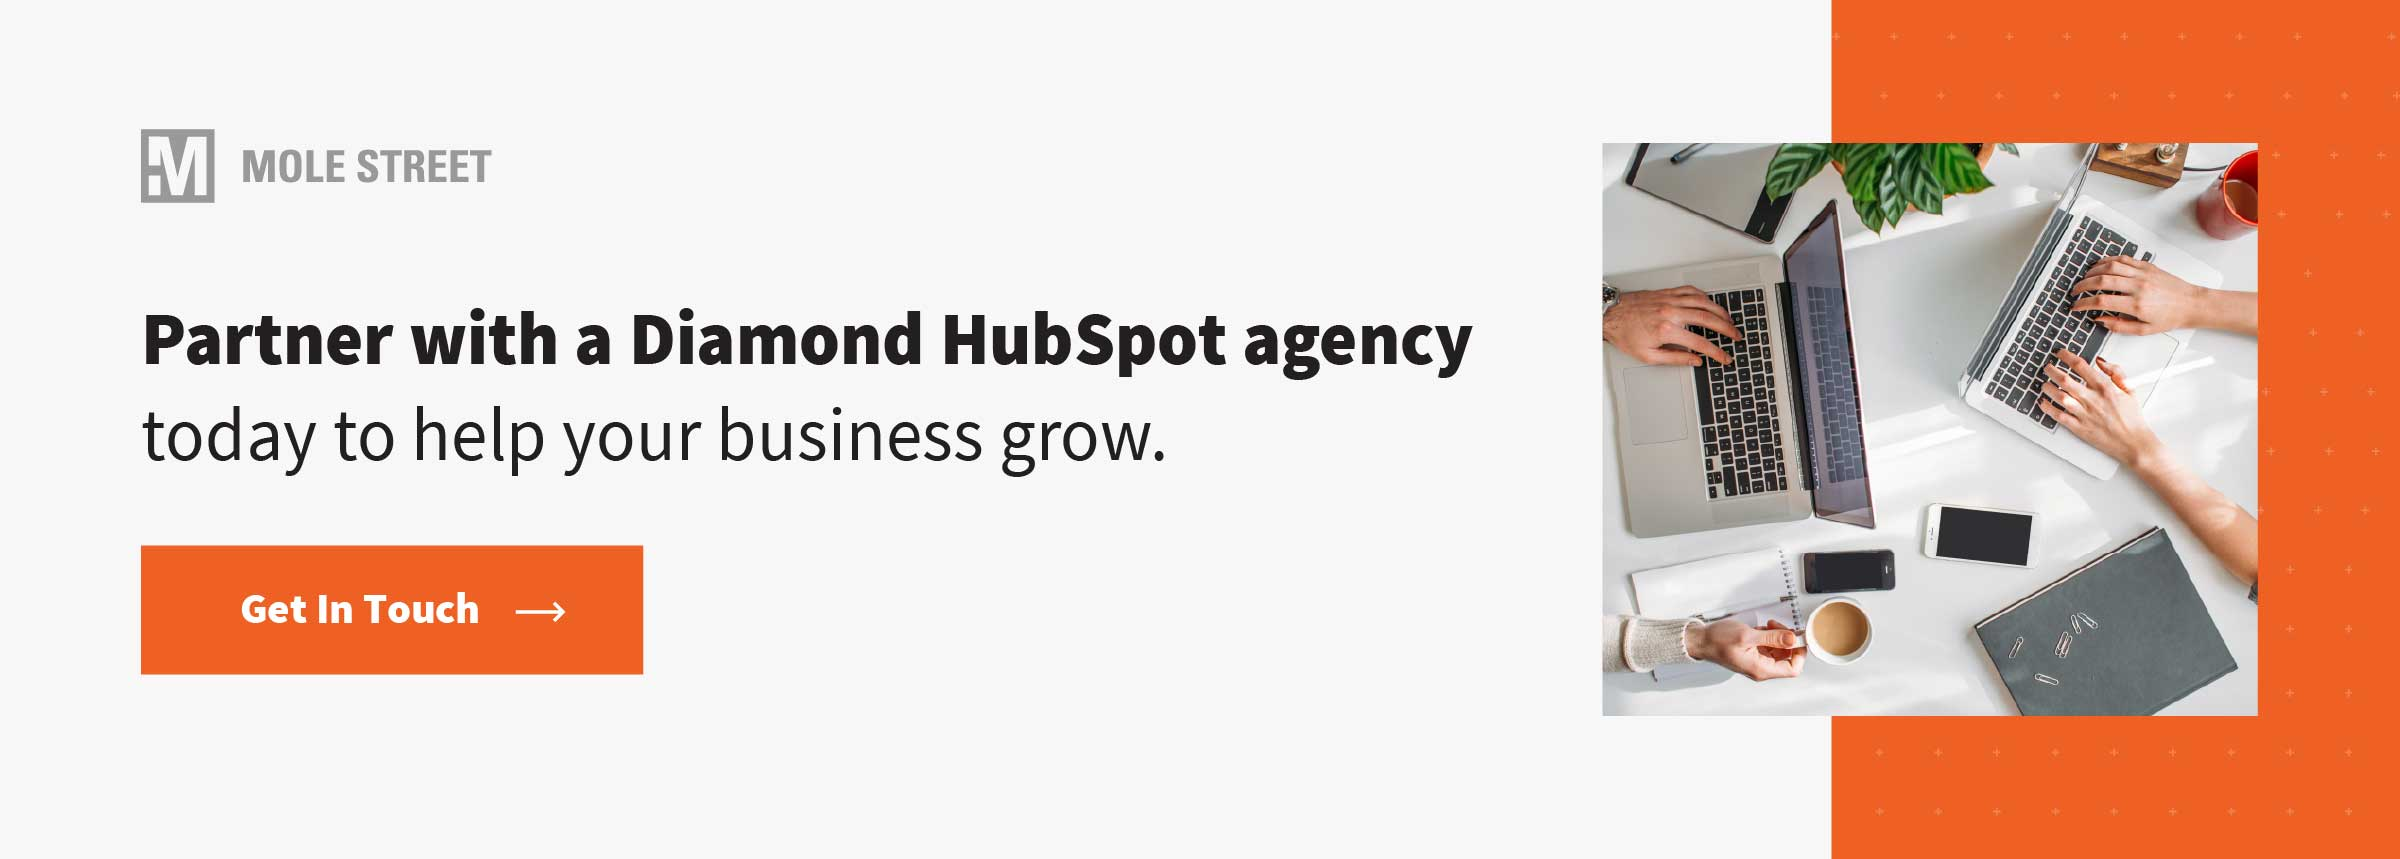 Partner with a Diamond HubSpot agency today to help your business grow. Click to get in touch.